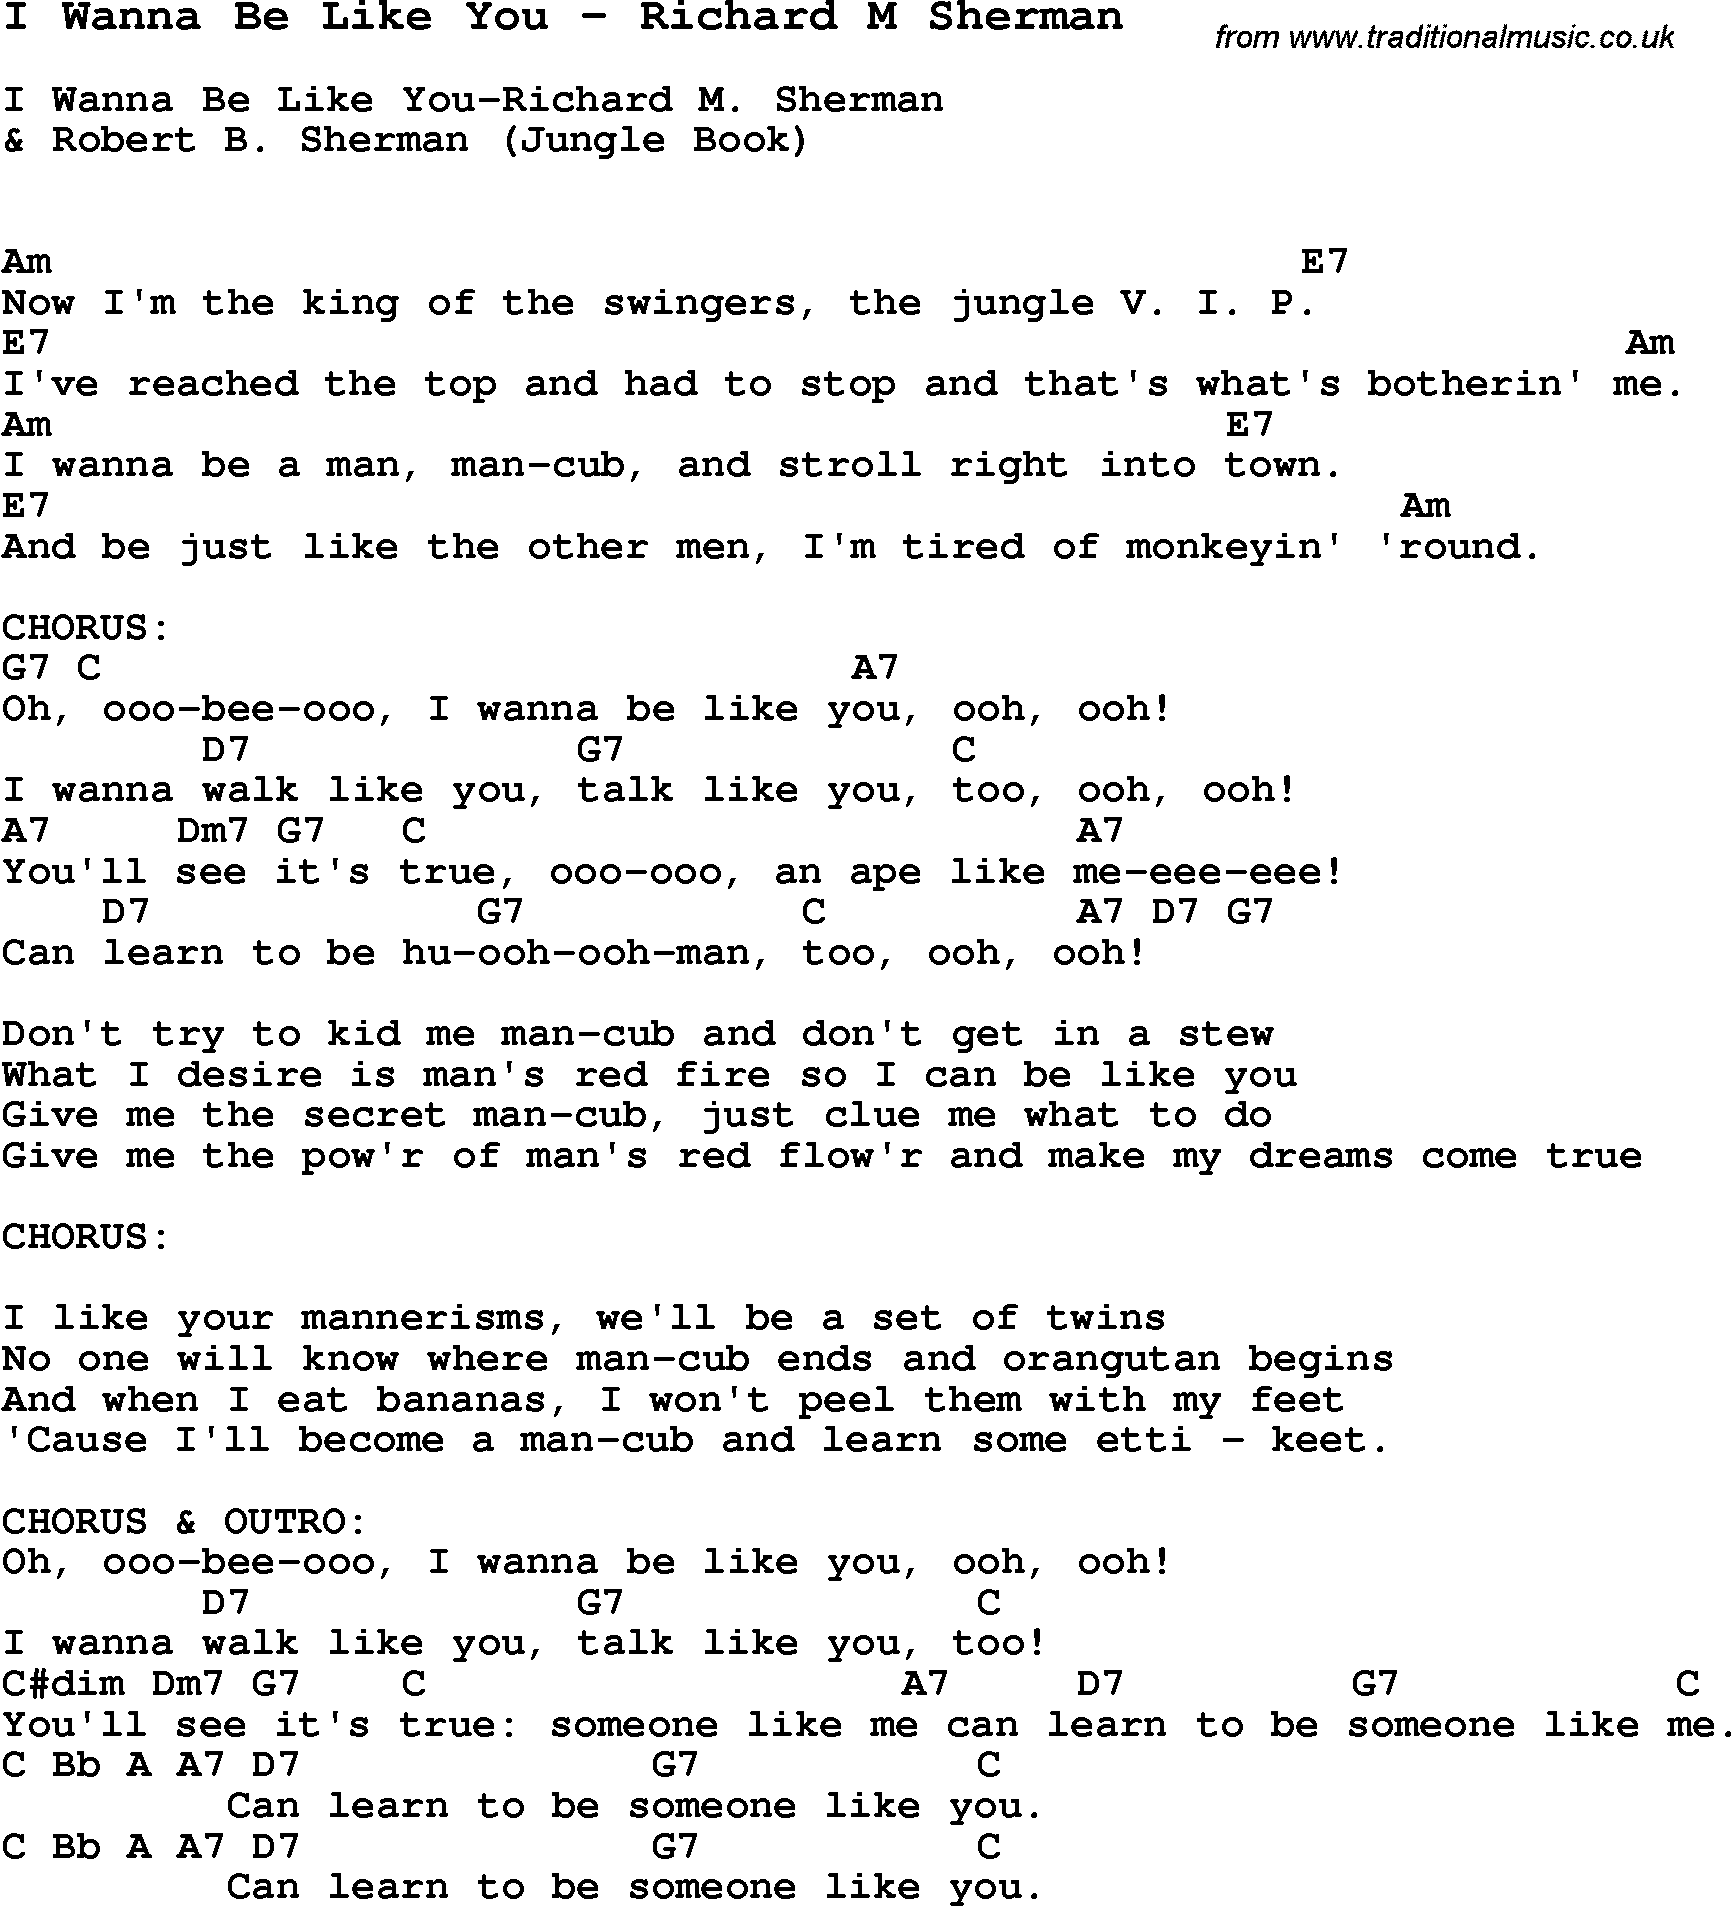 Song i wanna be like you by richard m sherman with lyrics for song i wanna be like you by richard m sherman song lyric for vocal performance plus accompaniment chords for ukulele guitar banjo etc hexwebz Image collections